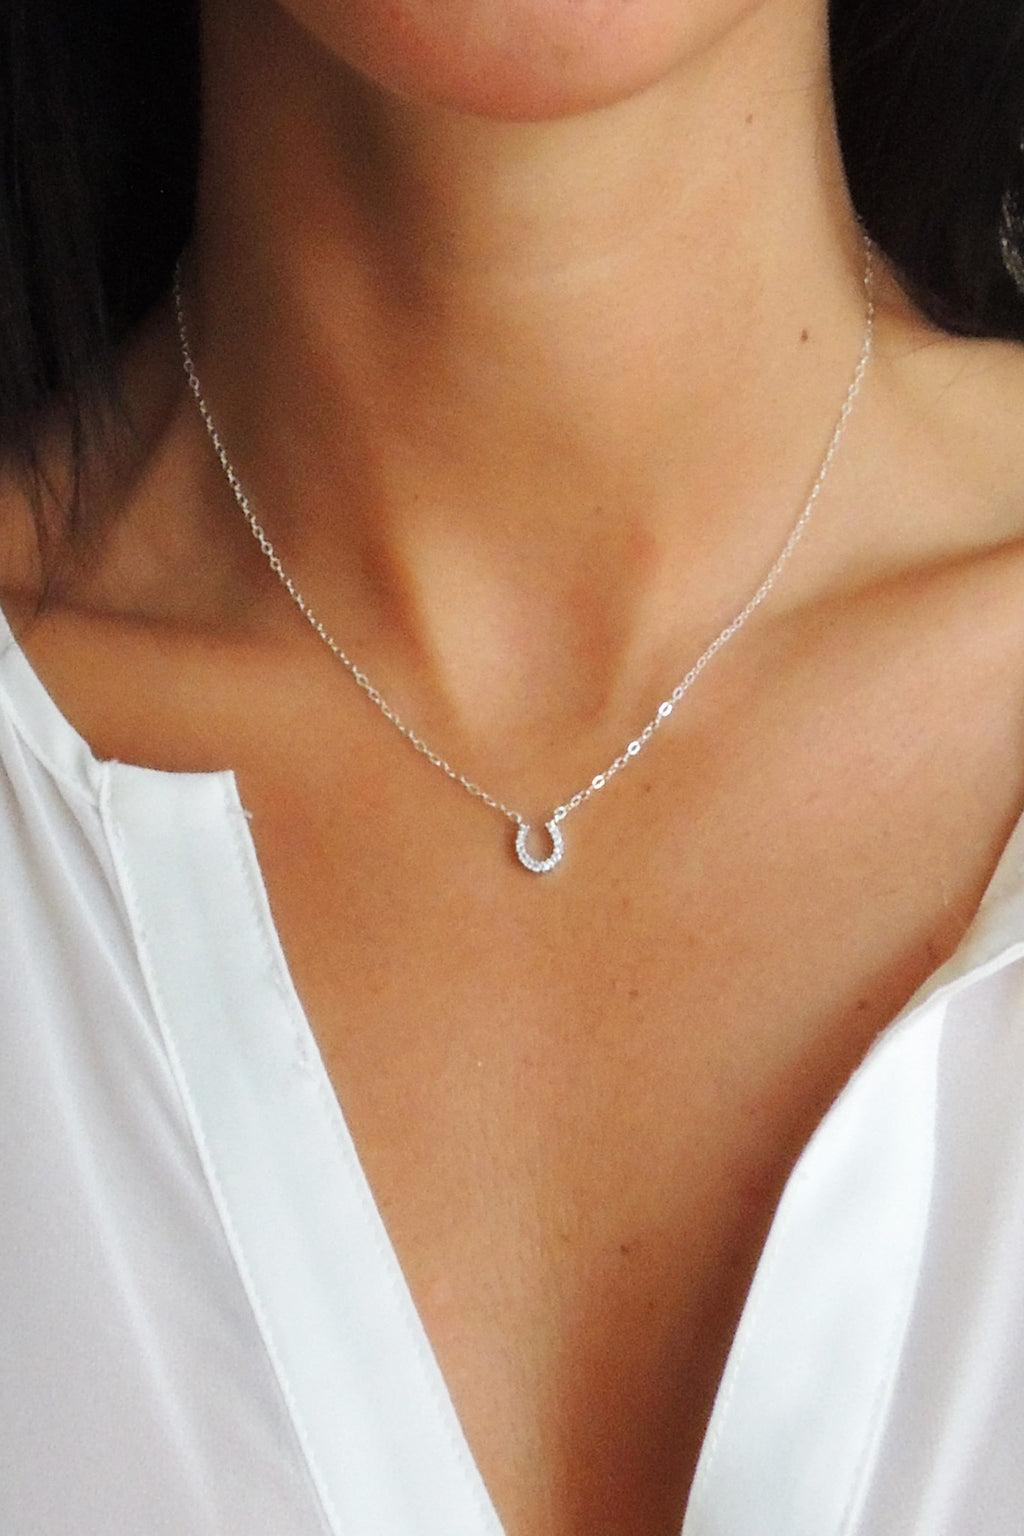 Lucky You Horseshoe Necklace - Christine Elizabeth Jewelry - Glamour and Glow